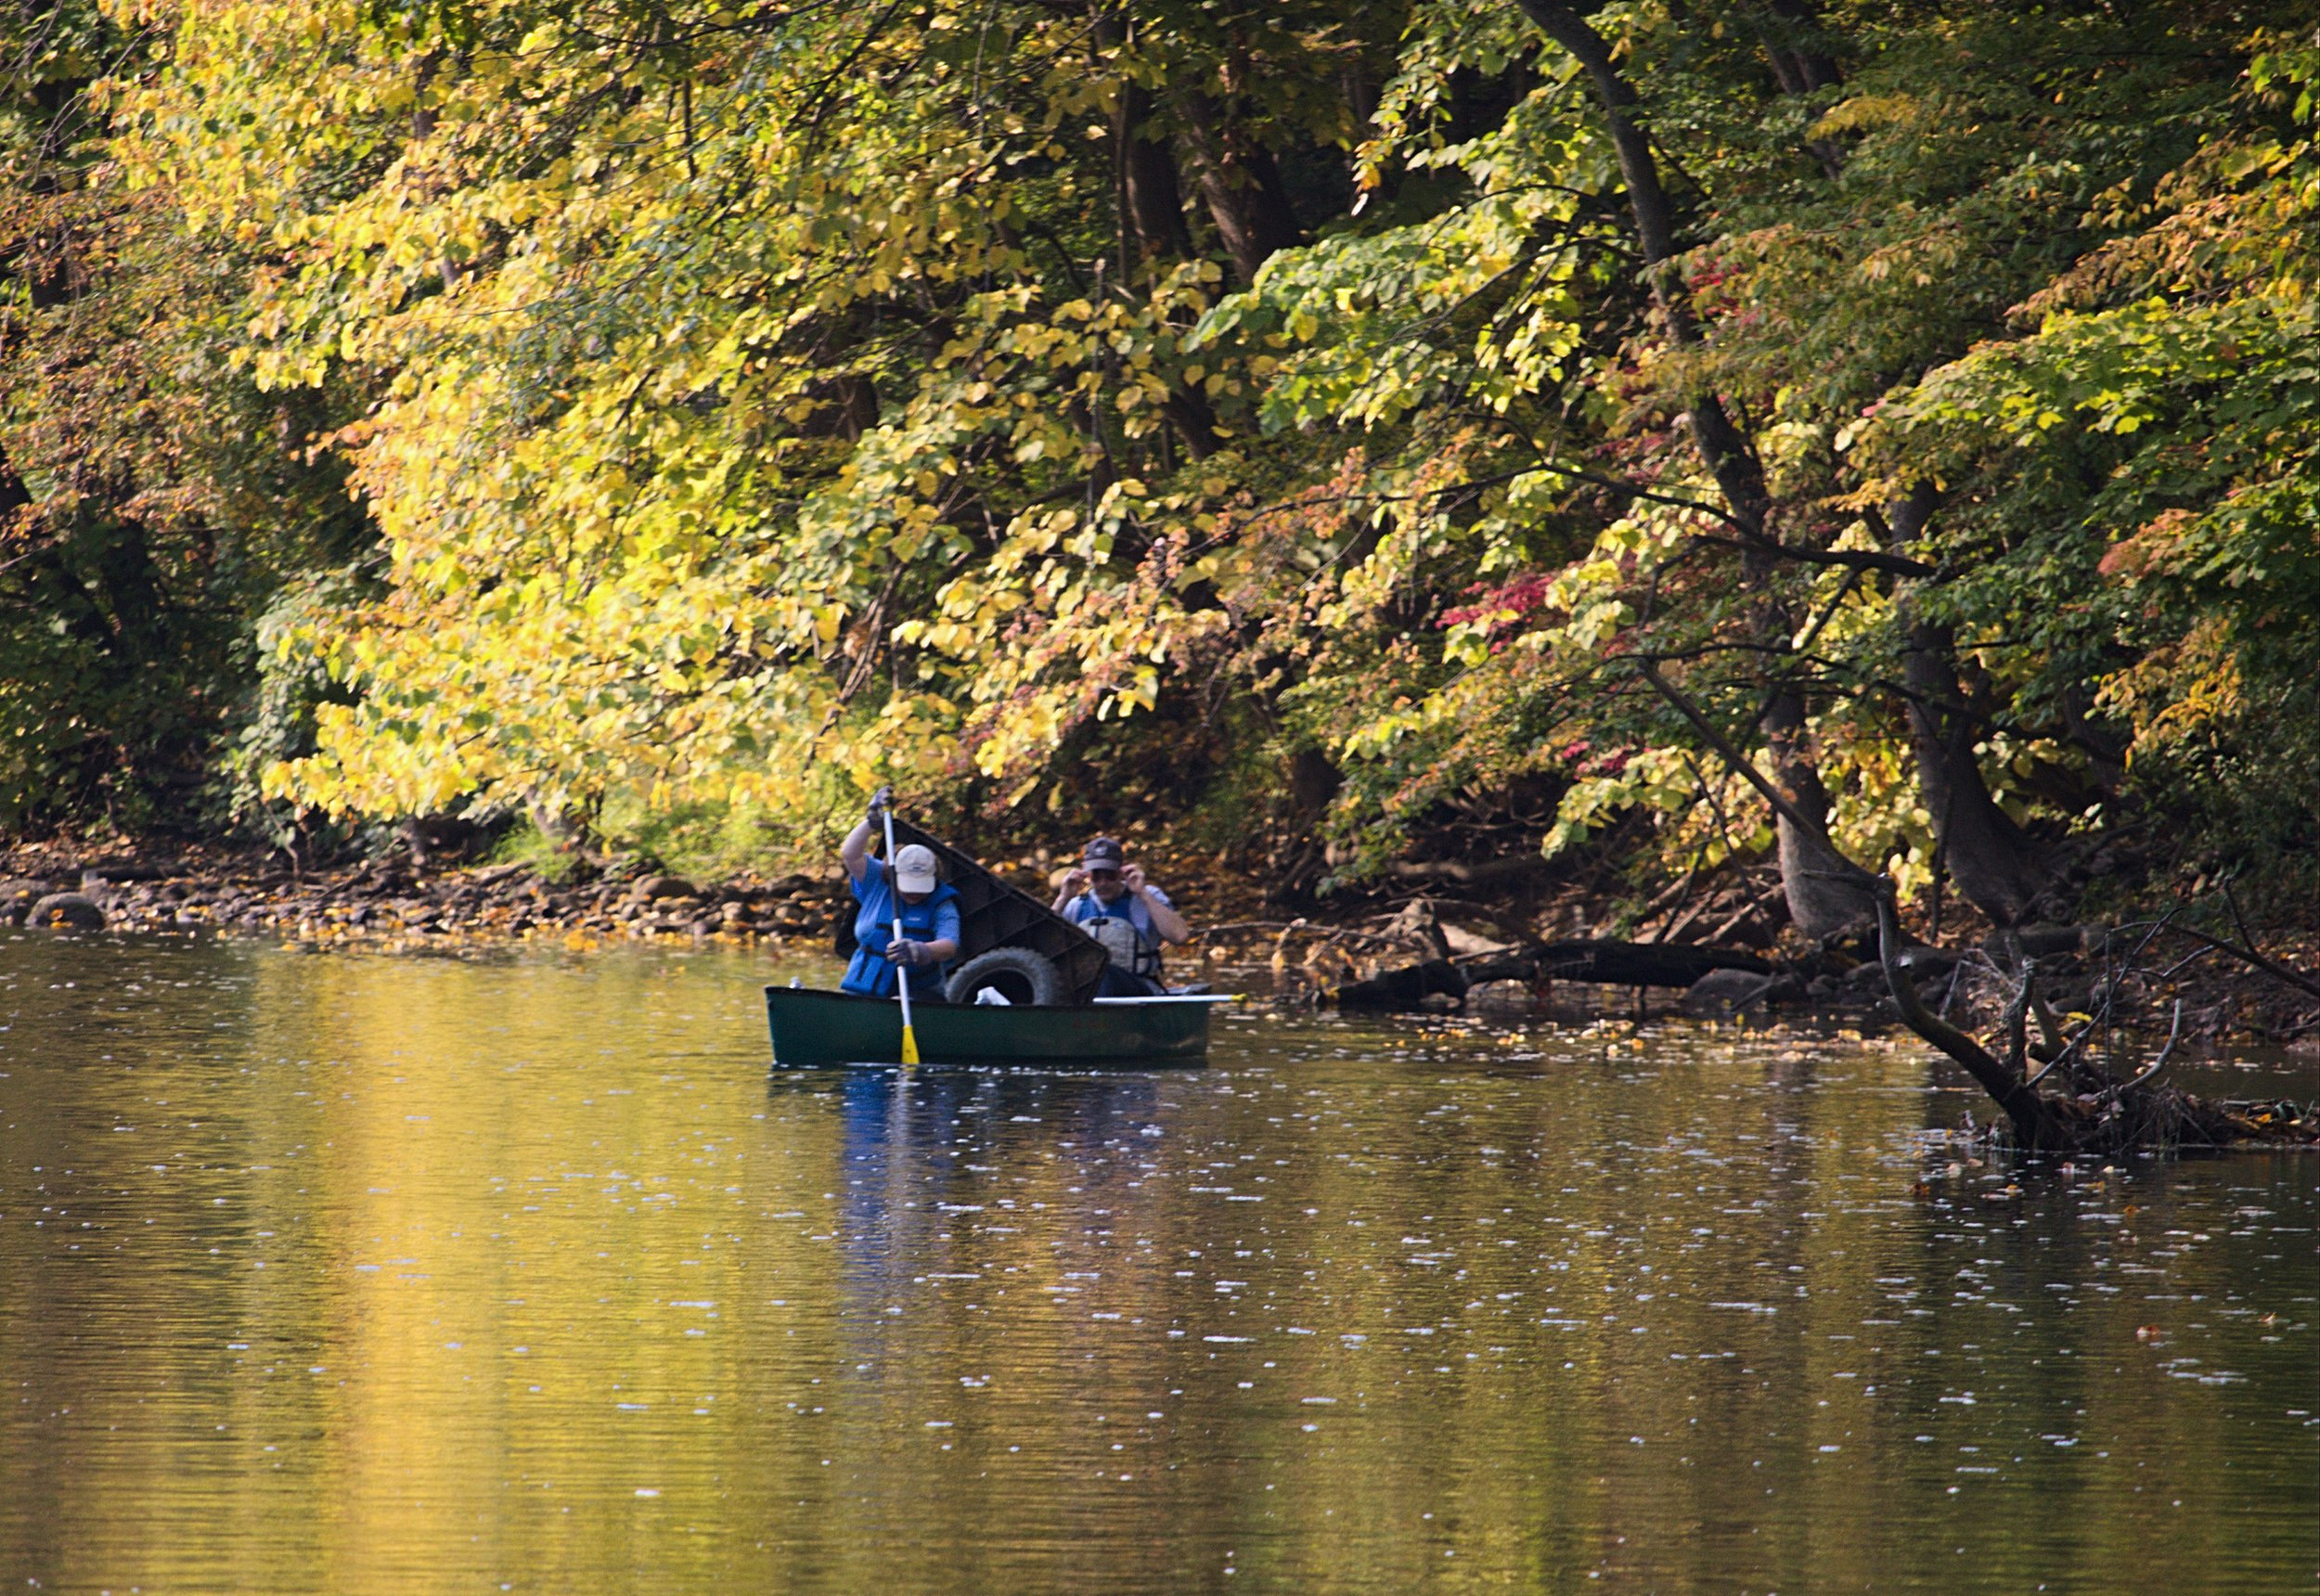 Werdon and Sonday were barely a half-mile down the river when their canoe was weighted down with a tire, an old plastic patio table, and several bags of other garbage.